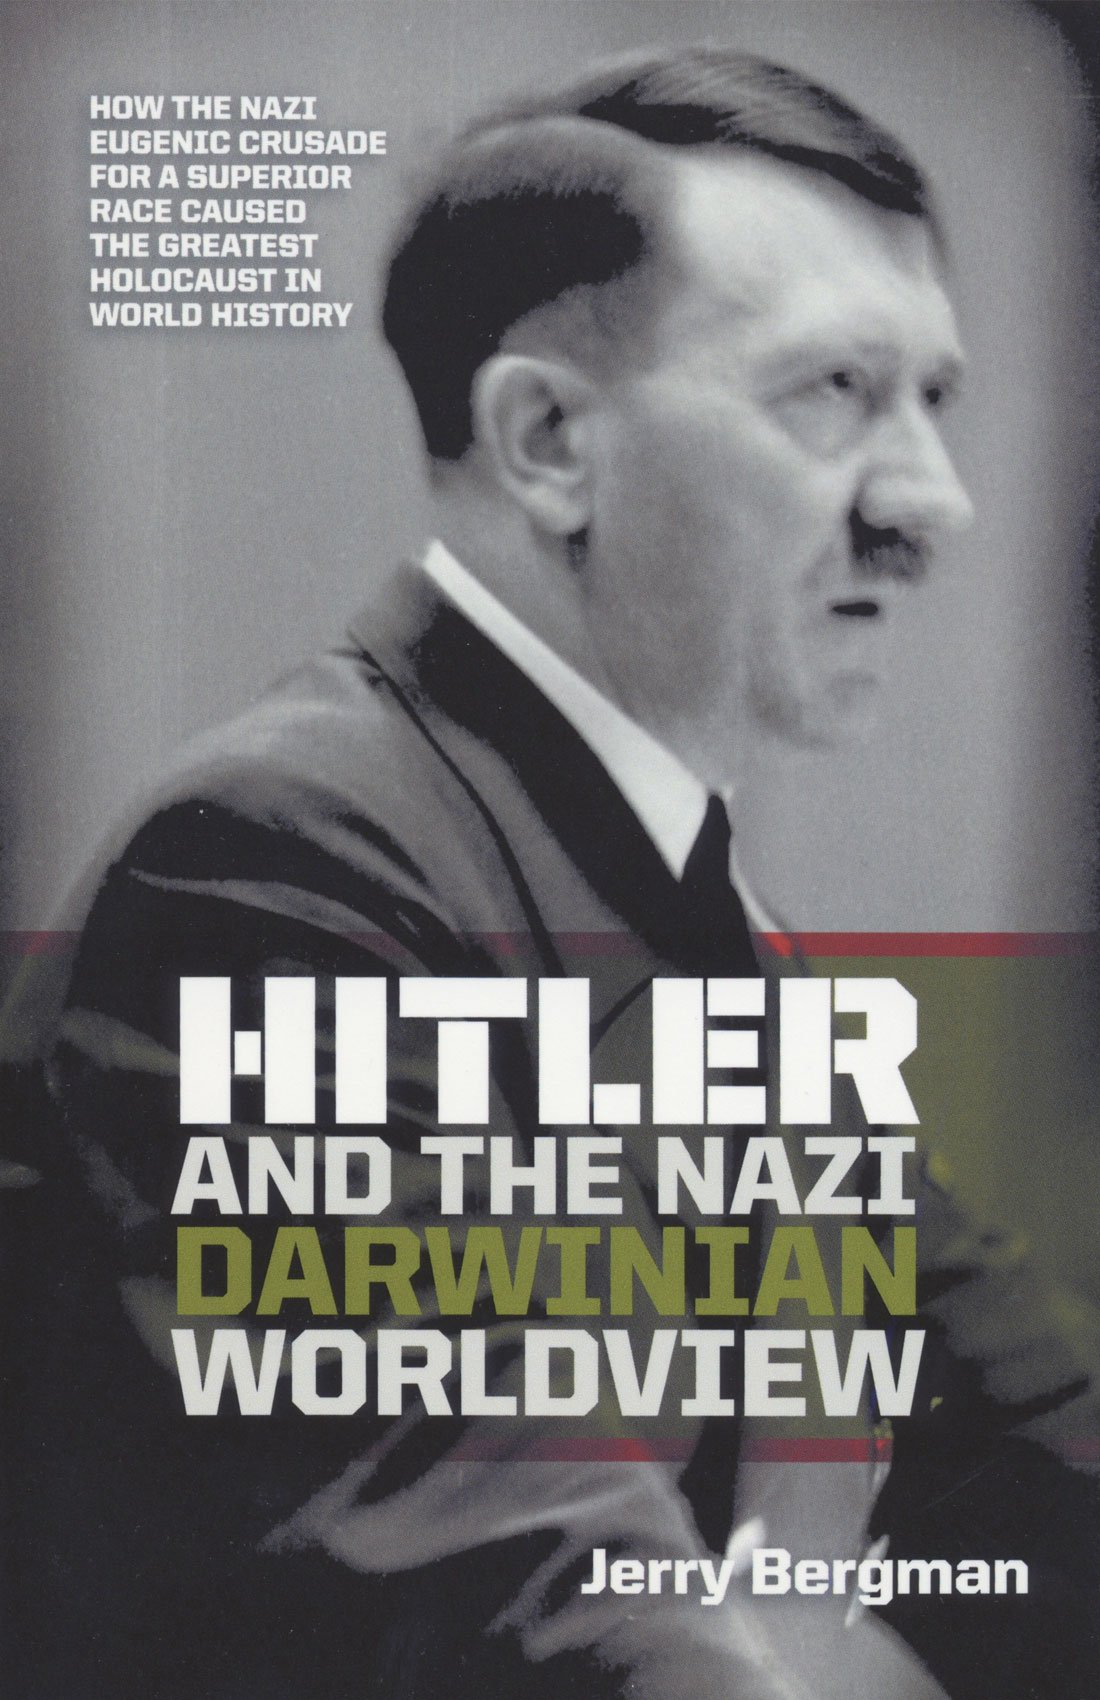 Hitler and the Nazi Darwinian Worldview - Hitler and the Nazi Darwinian World View